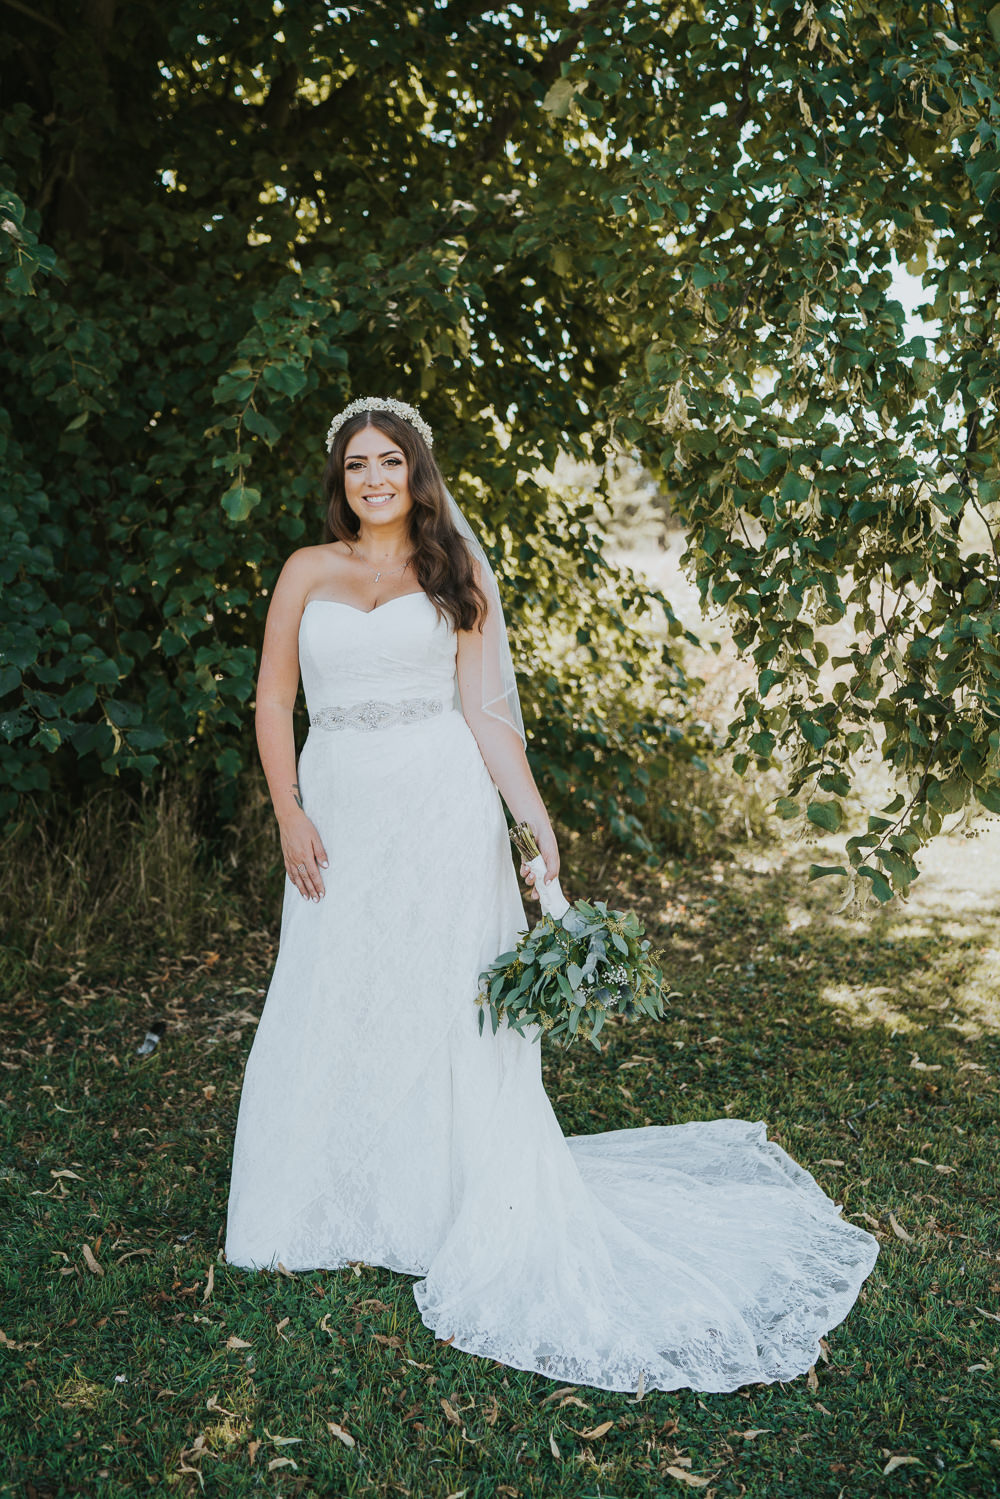 Intimate Outdoor Natural Relaxed Laid Back Summer Bride Greenery Foliage Bouquet | Prested Hall Wedding Grace Elizabeth Photography